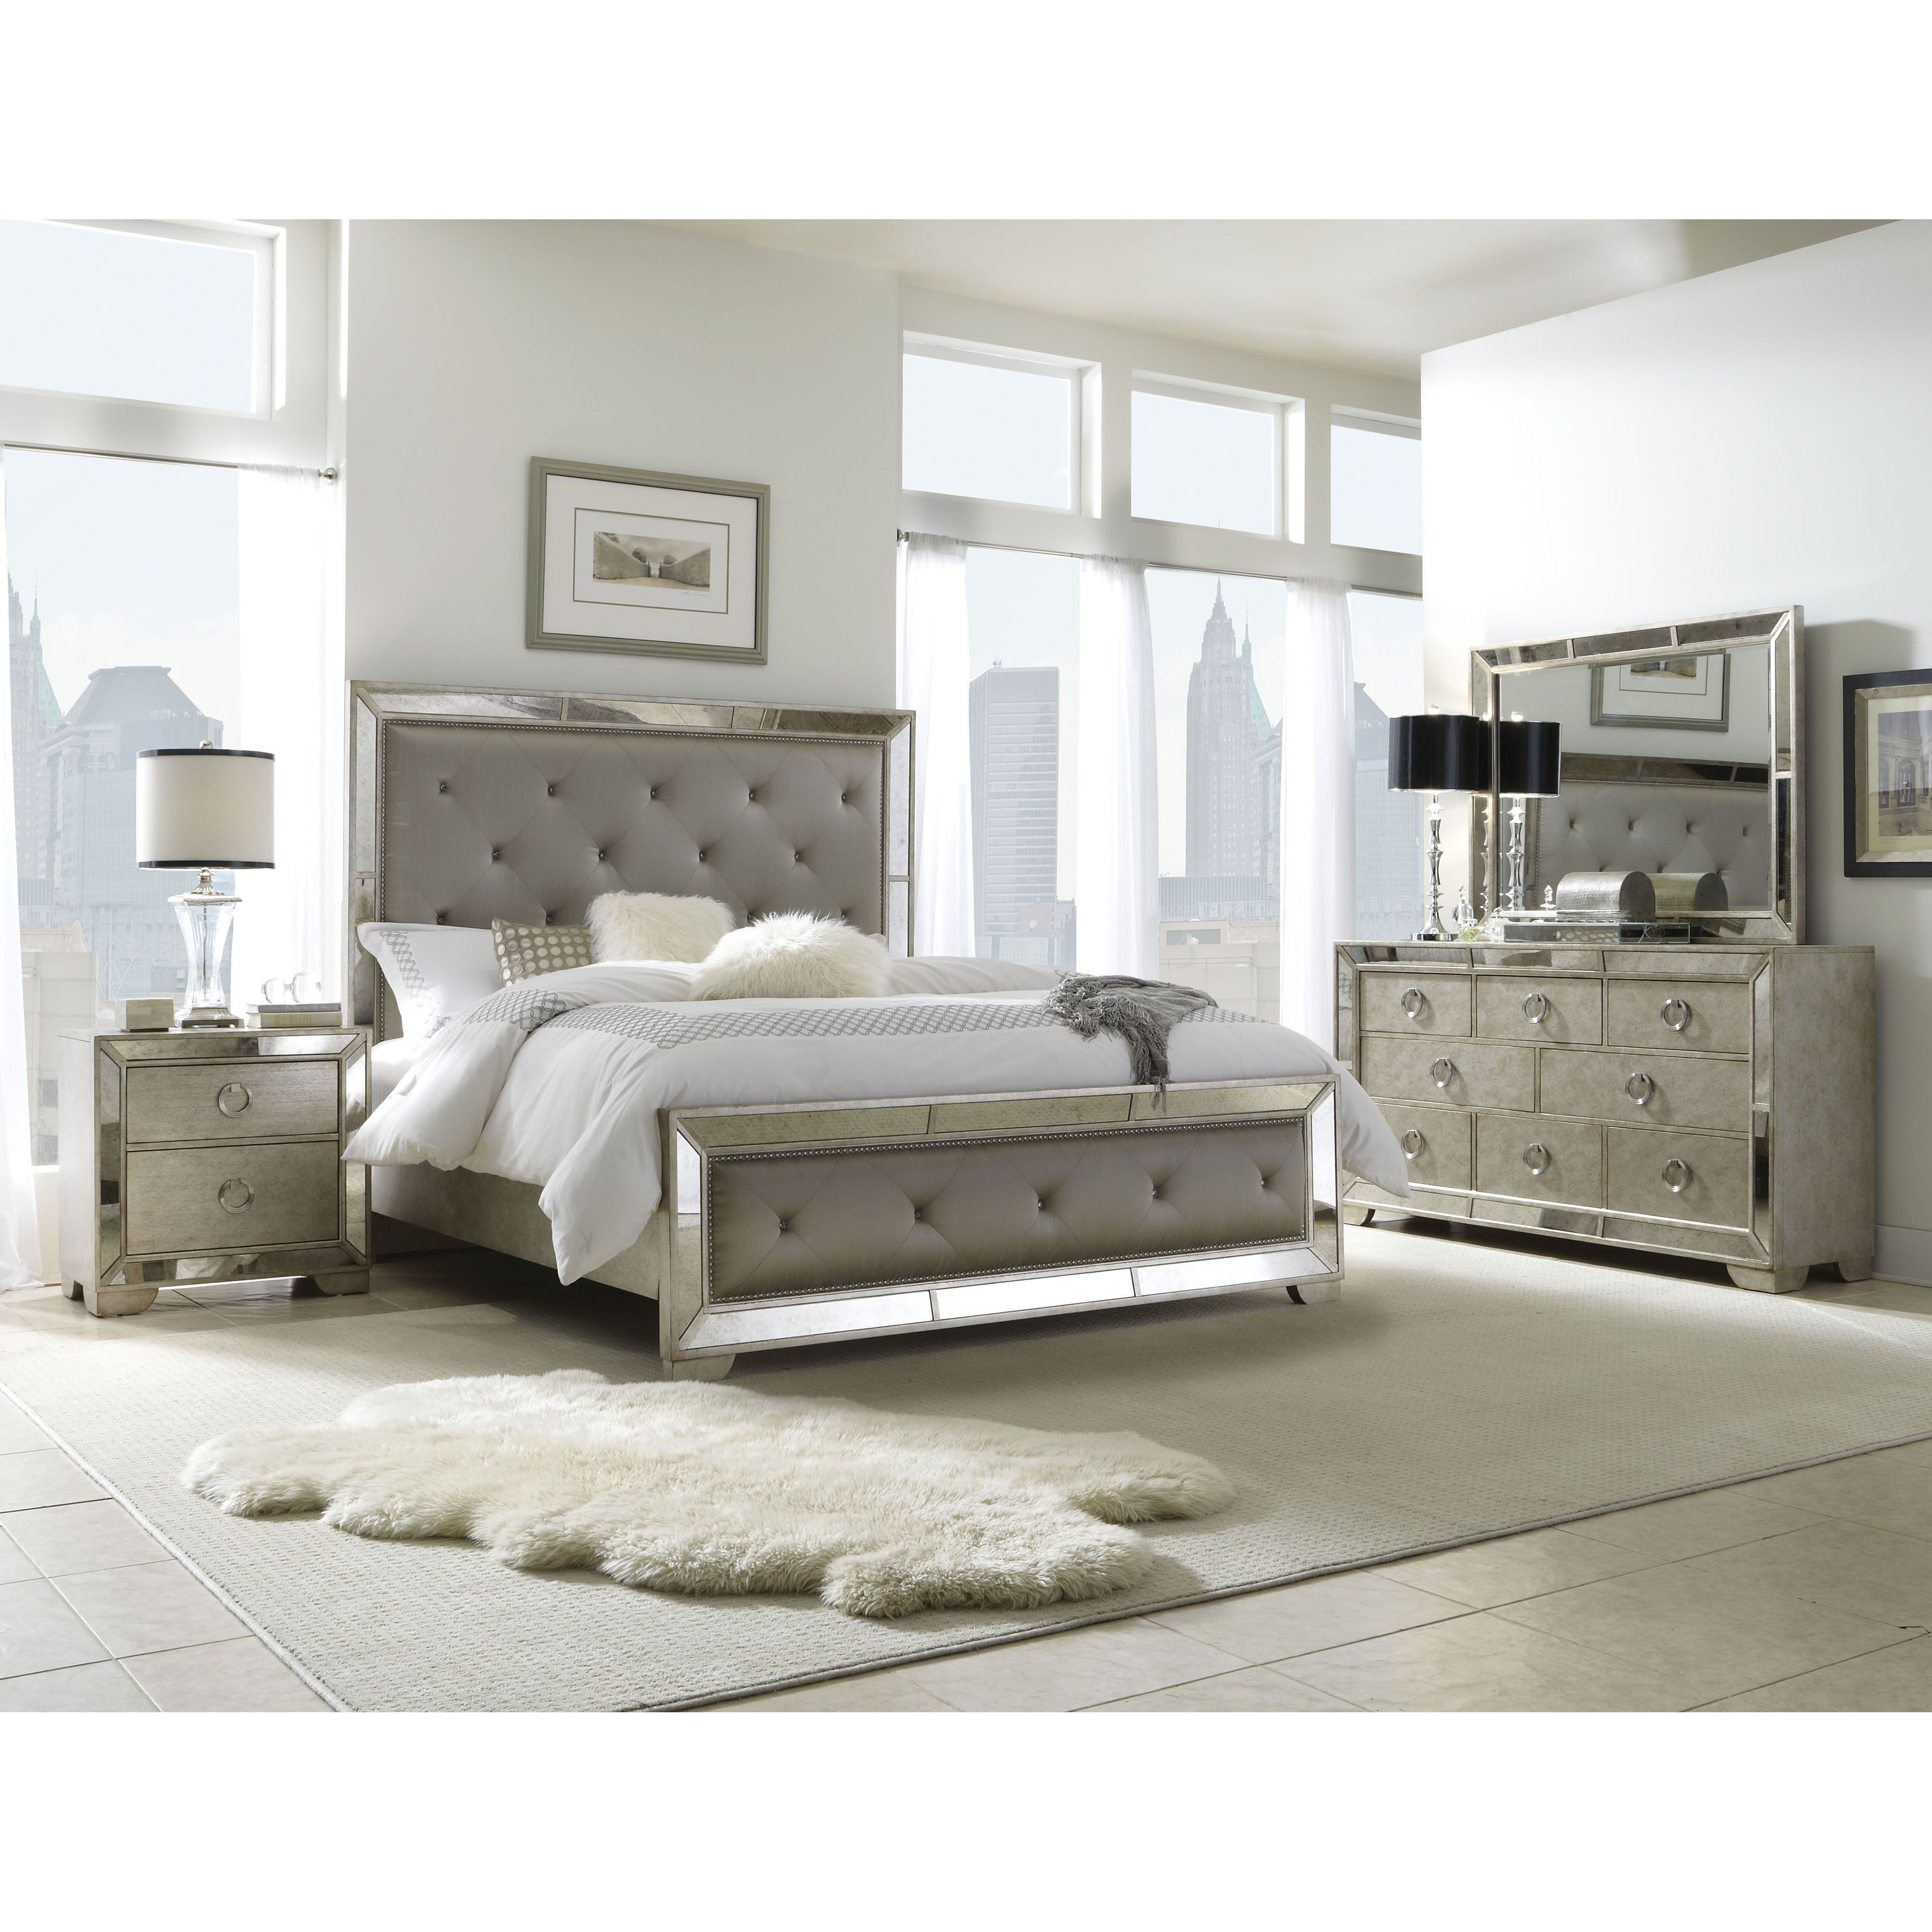 Celine 5 Piece Mirrored And Upholstered Tufted King Size